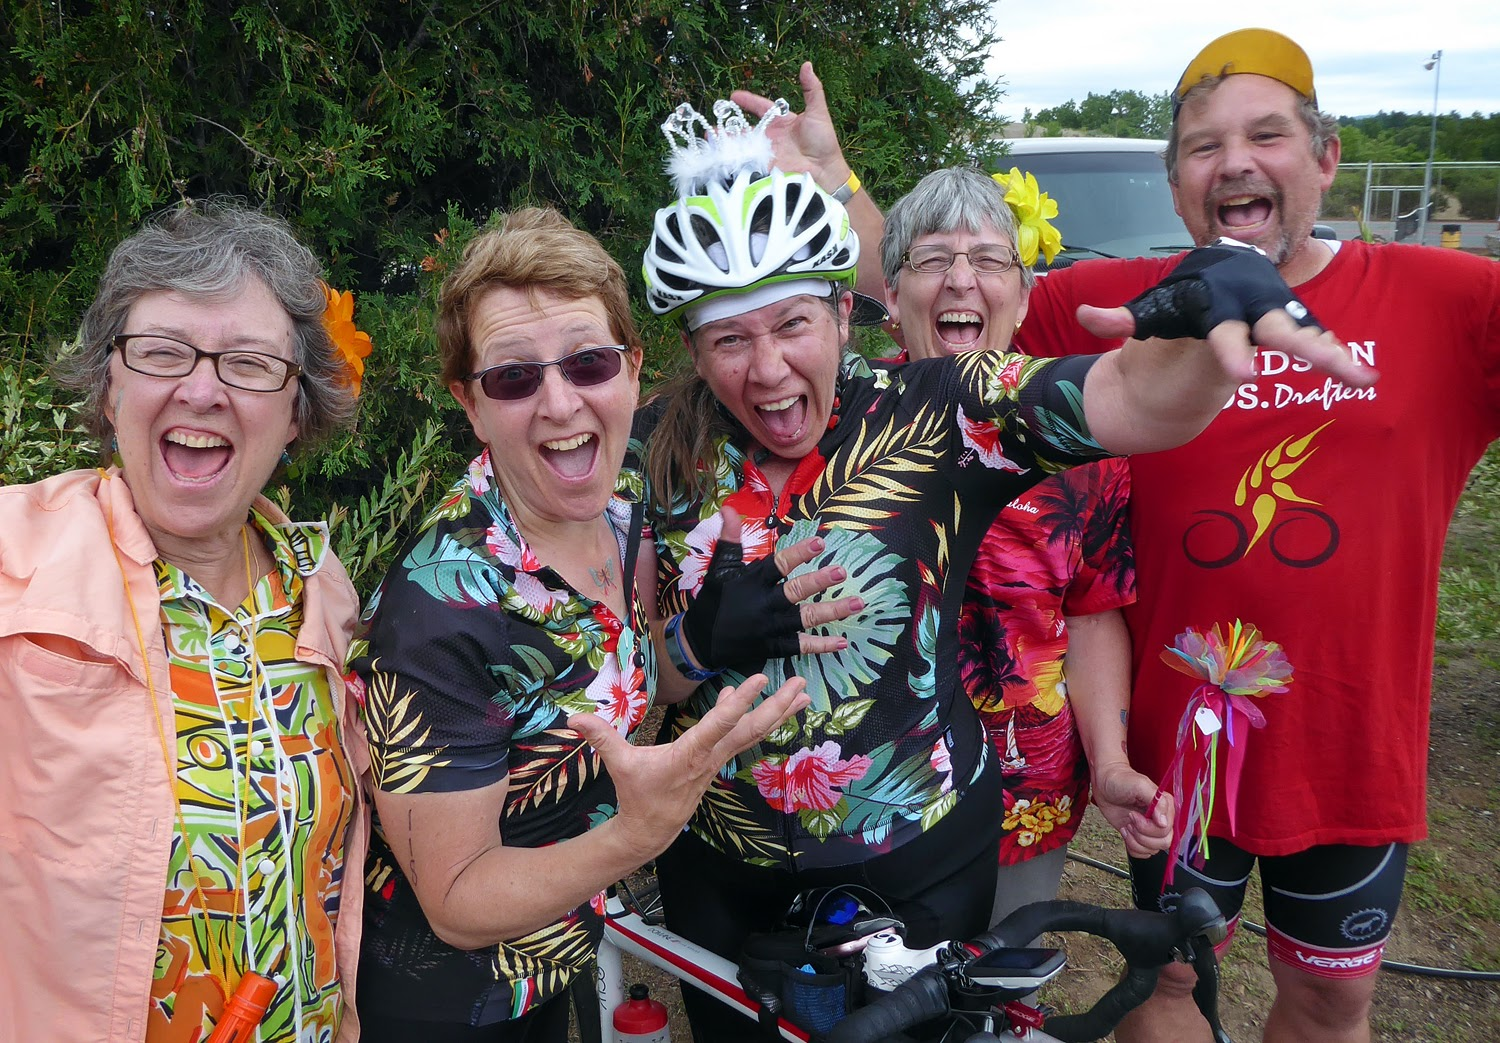 Ginny Paton, center, with crown on helmet, poses with friends at the finish in Ski Bowl Park. She came all the way from California to ride in her third Ididaride. Copyright by Dave Kraus/ Krausgrafik.com